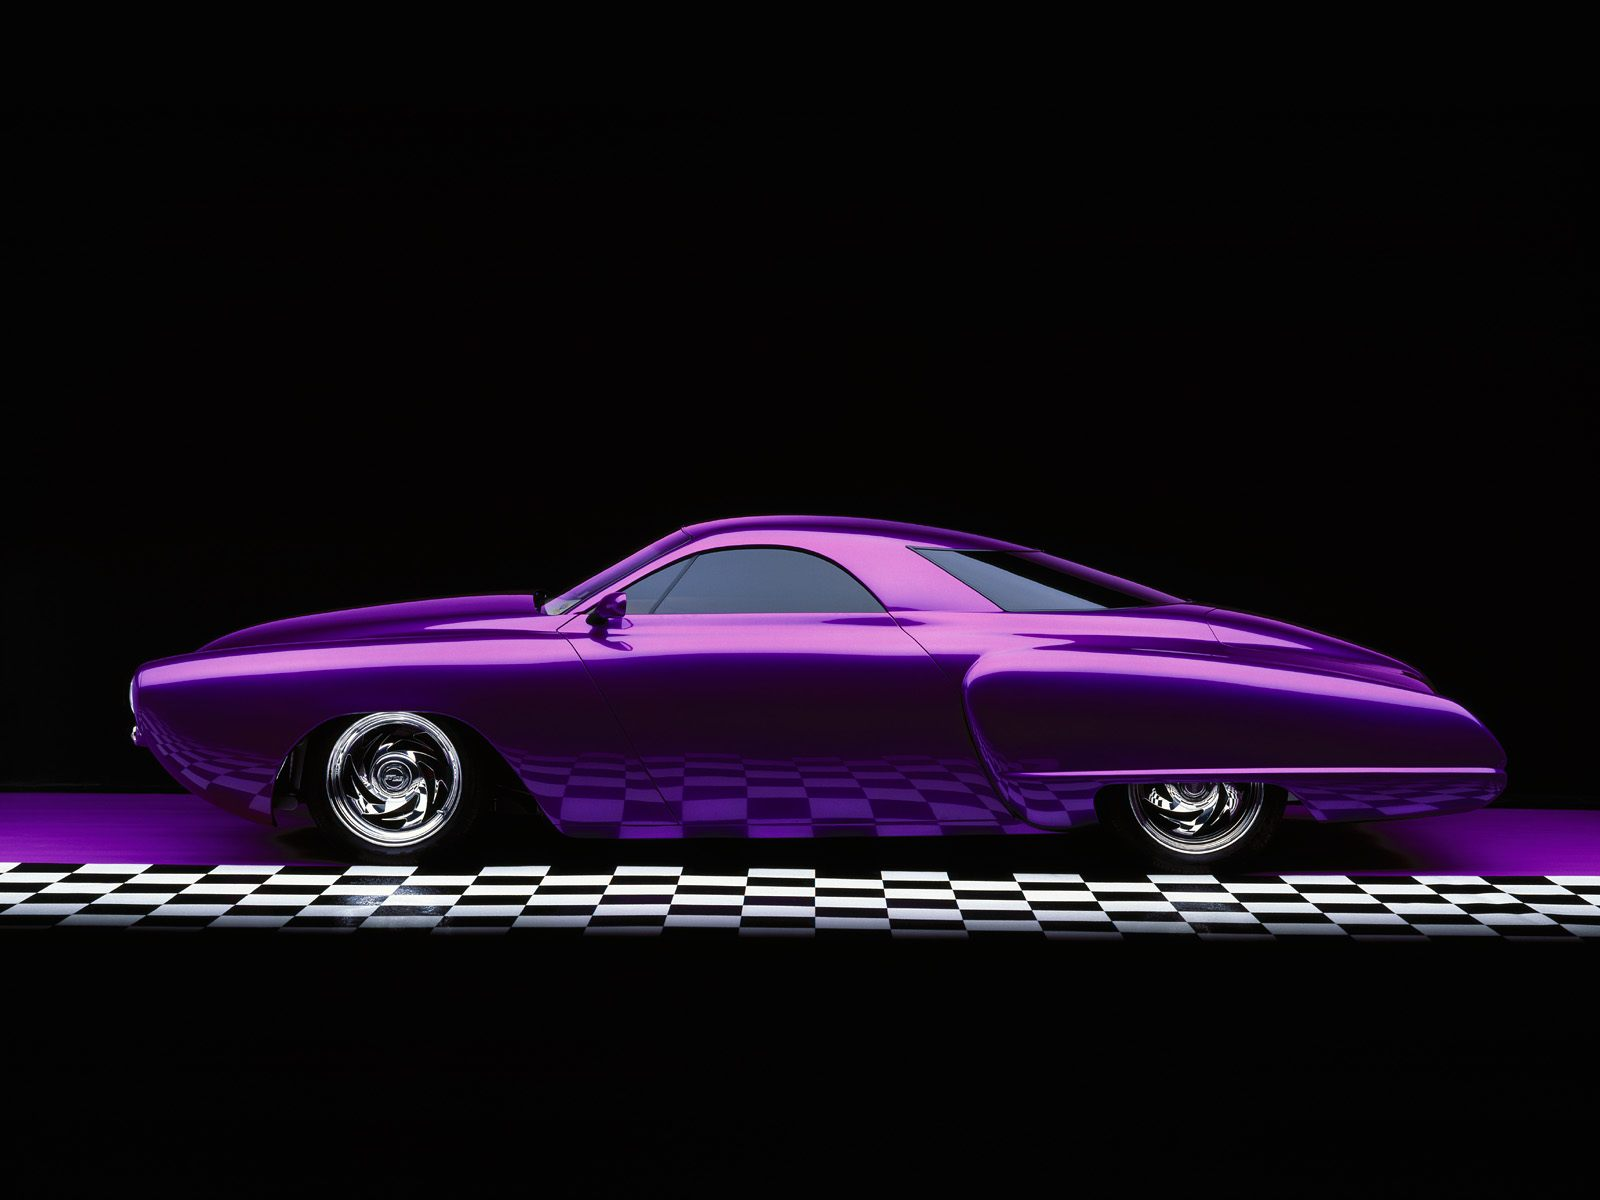 Download Background   Cars Wallpapers 60   Cool Backgrounds and 1600x1200